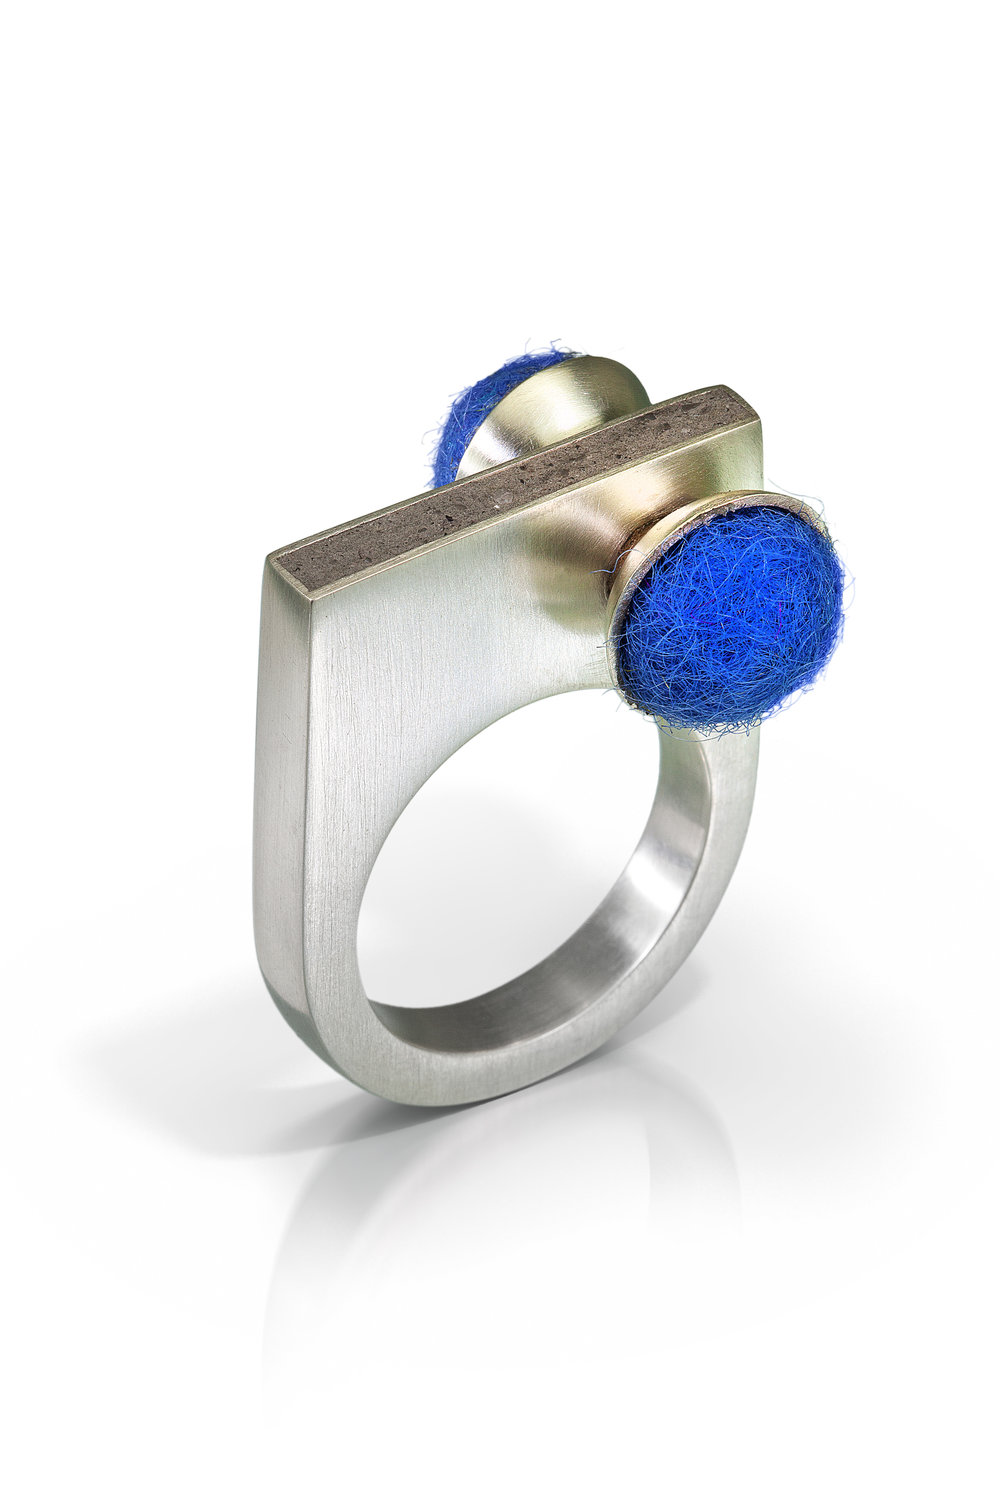 Shades of Gray Ring.jpg